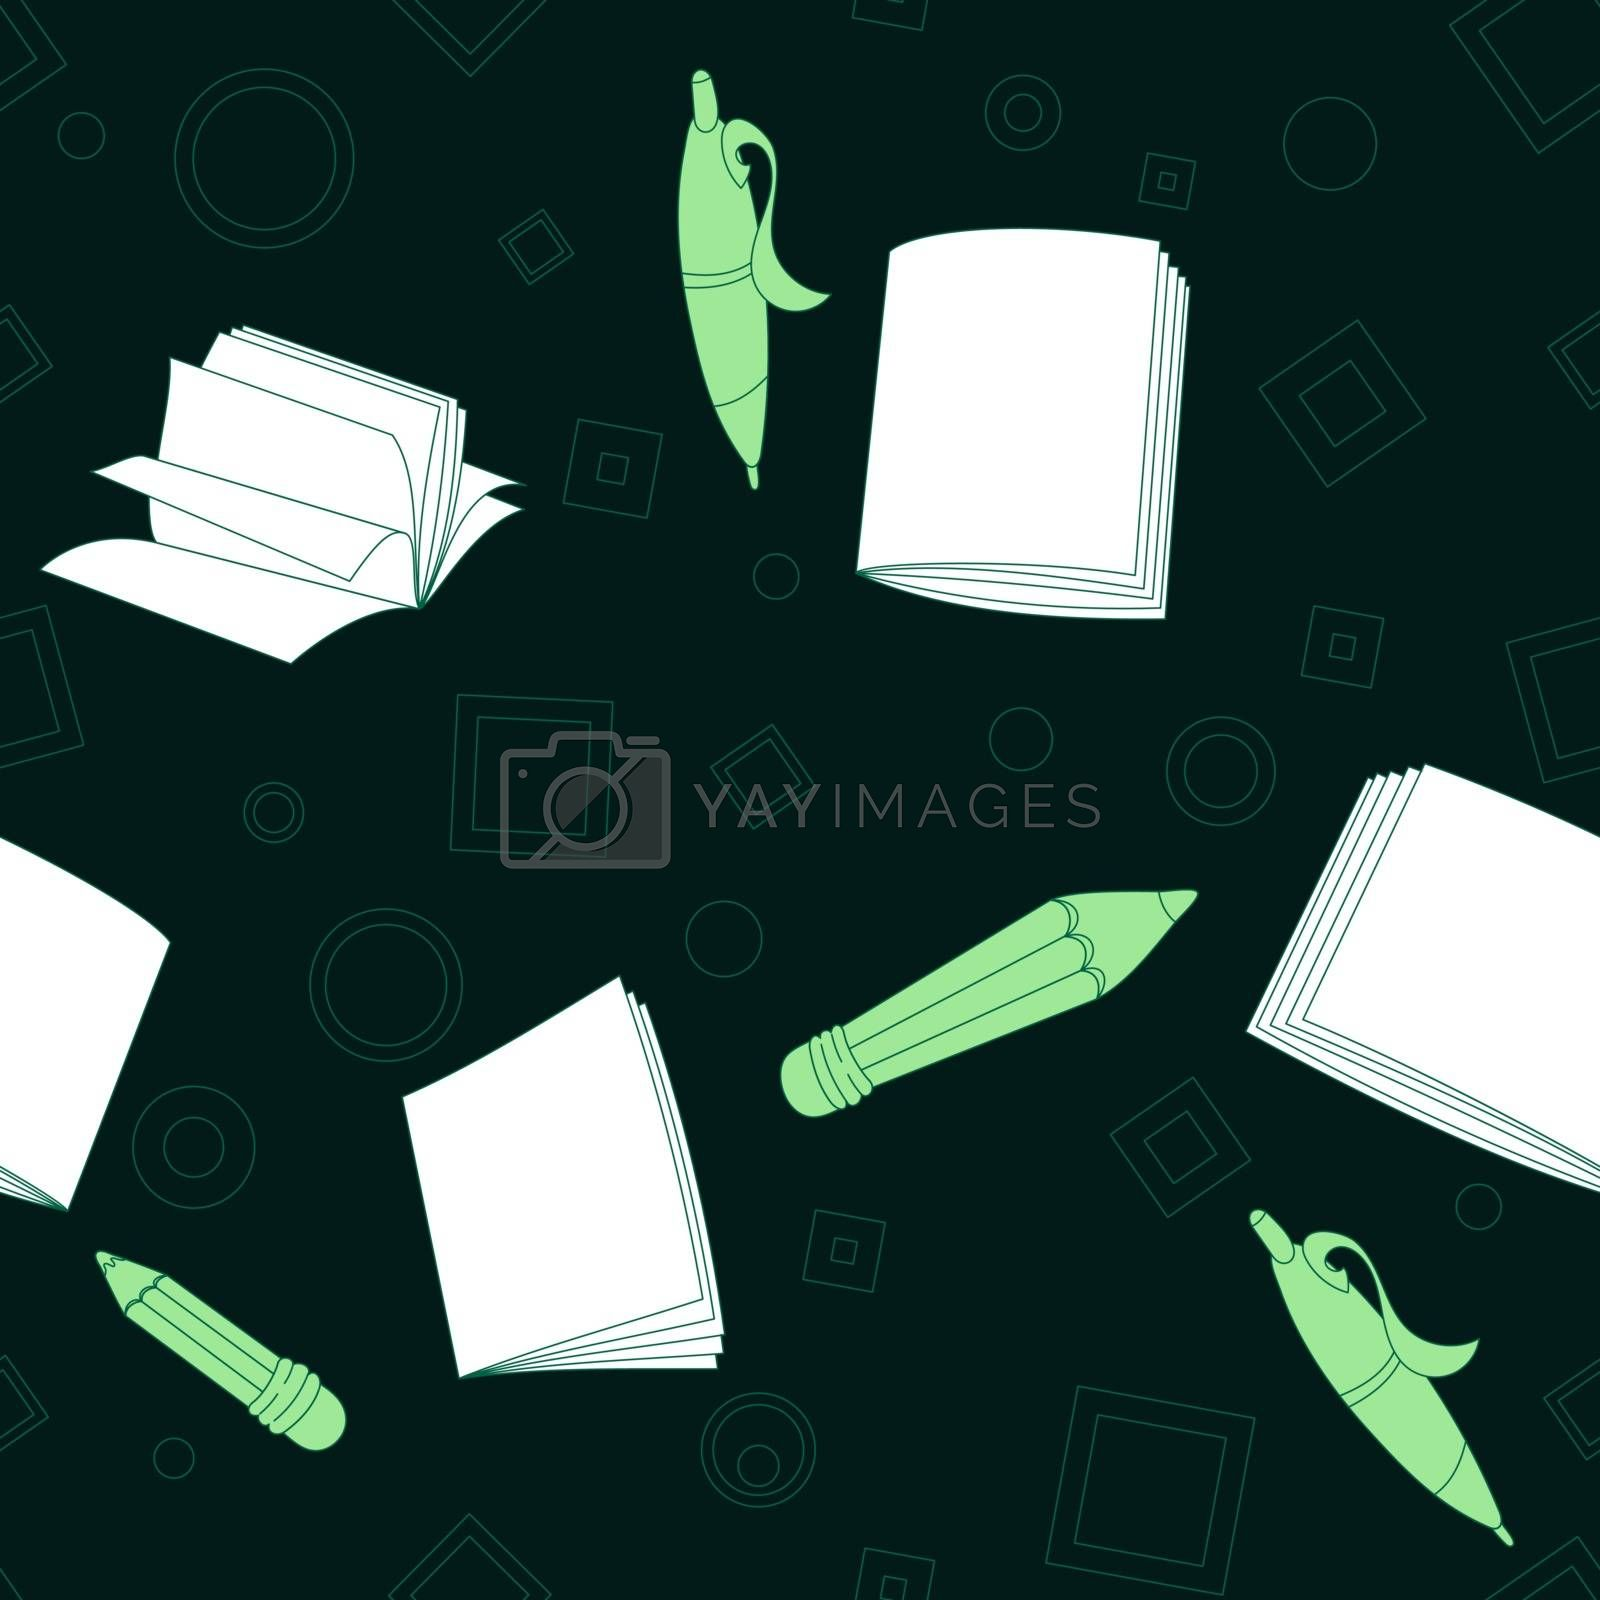 School notes seamless pattern on dark green background. Tools for drawing. Cartoon color background.